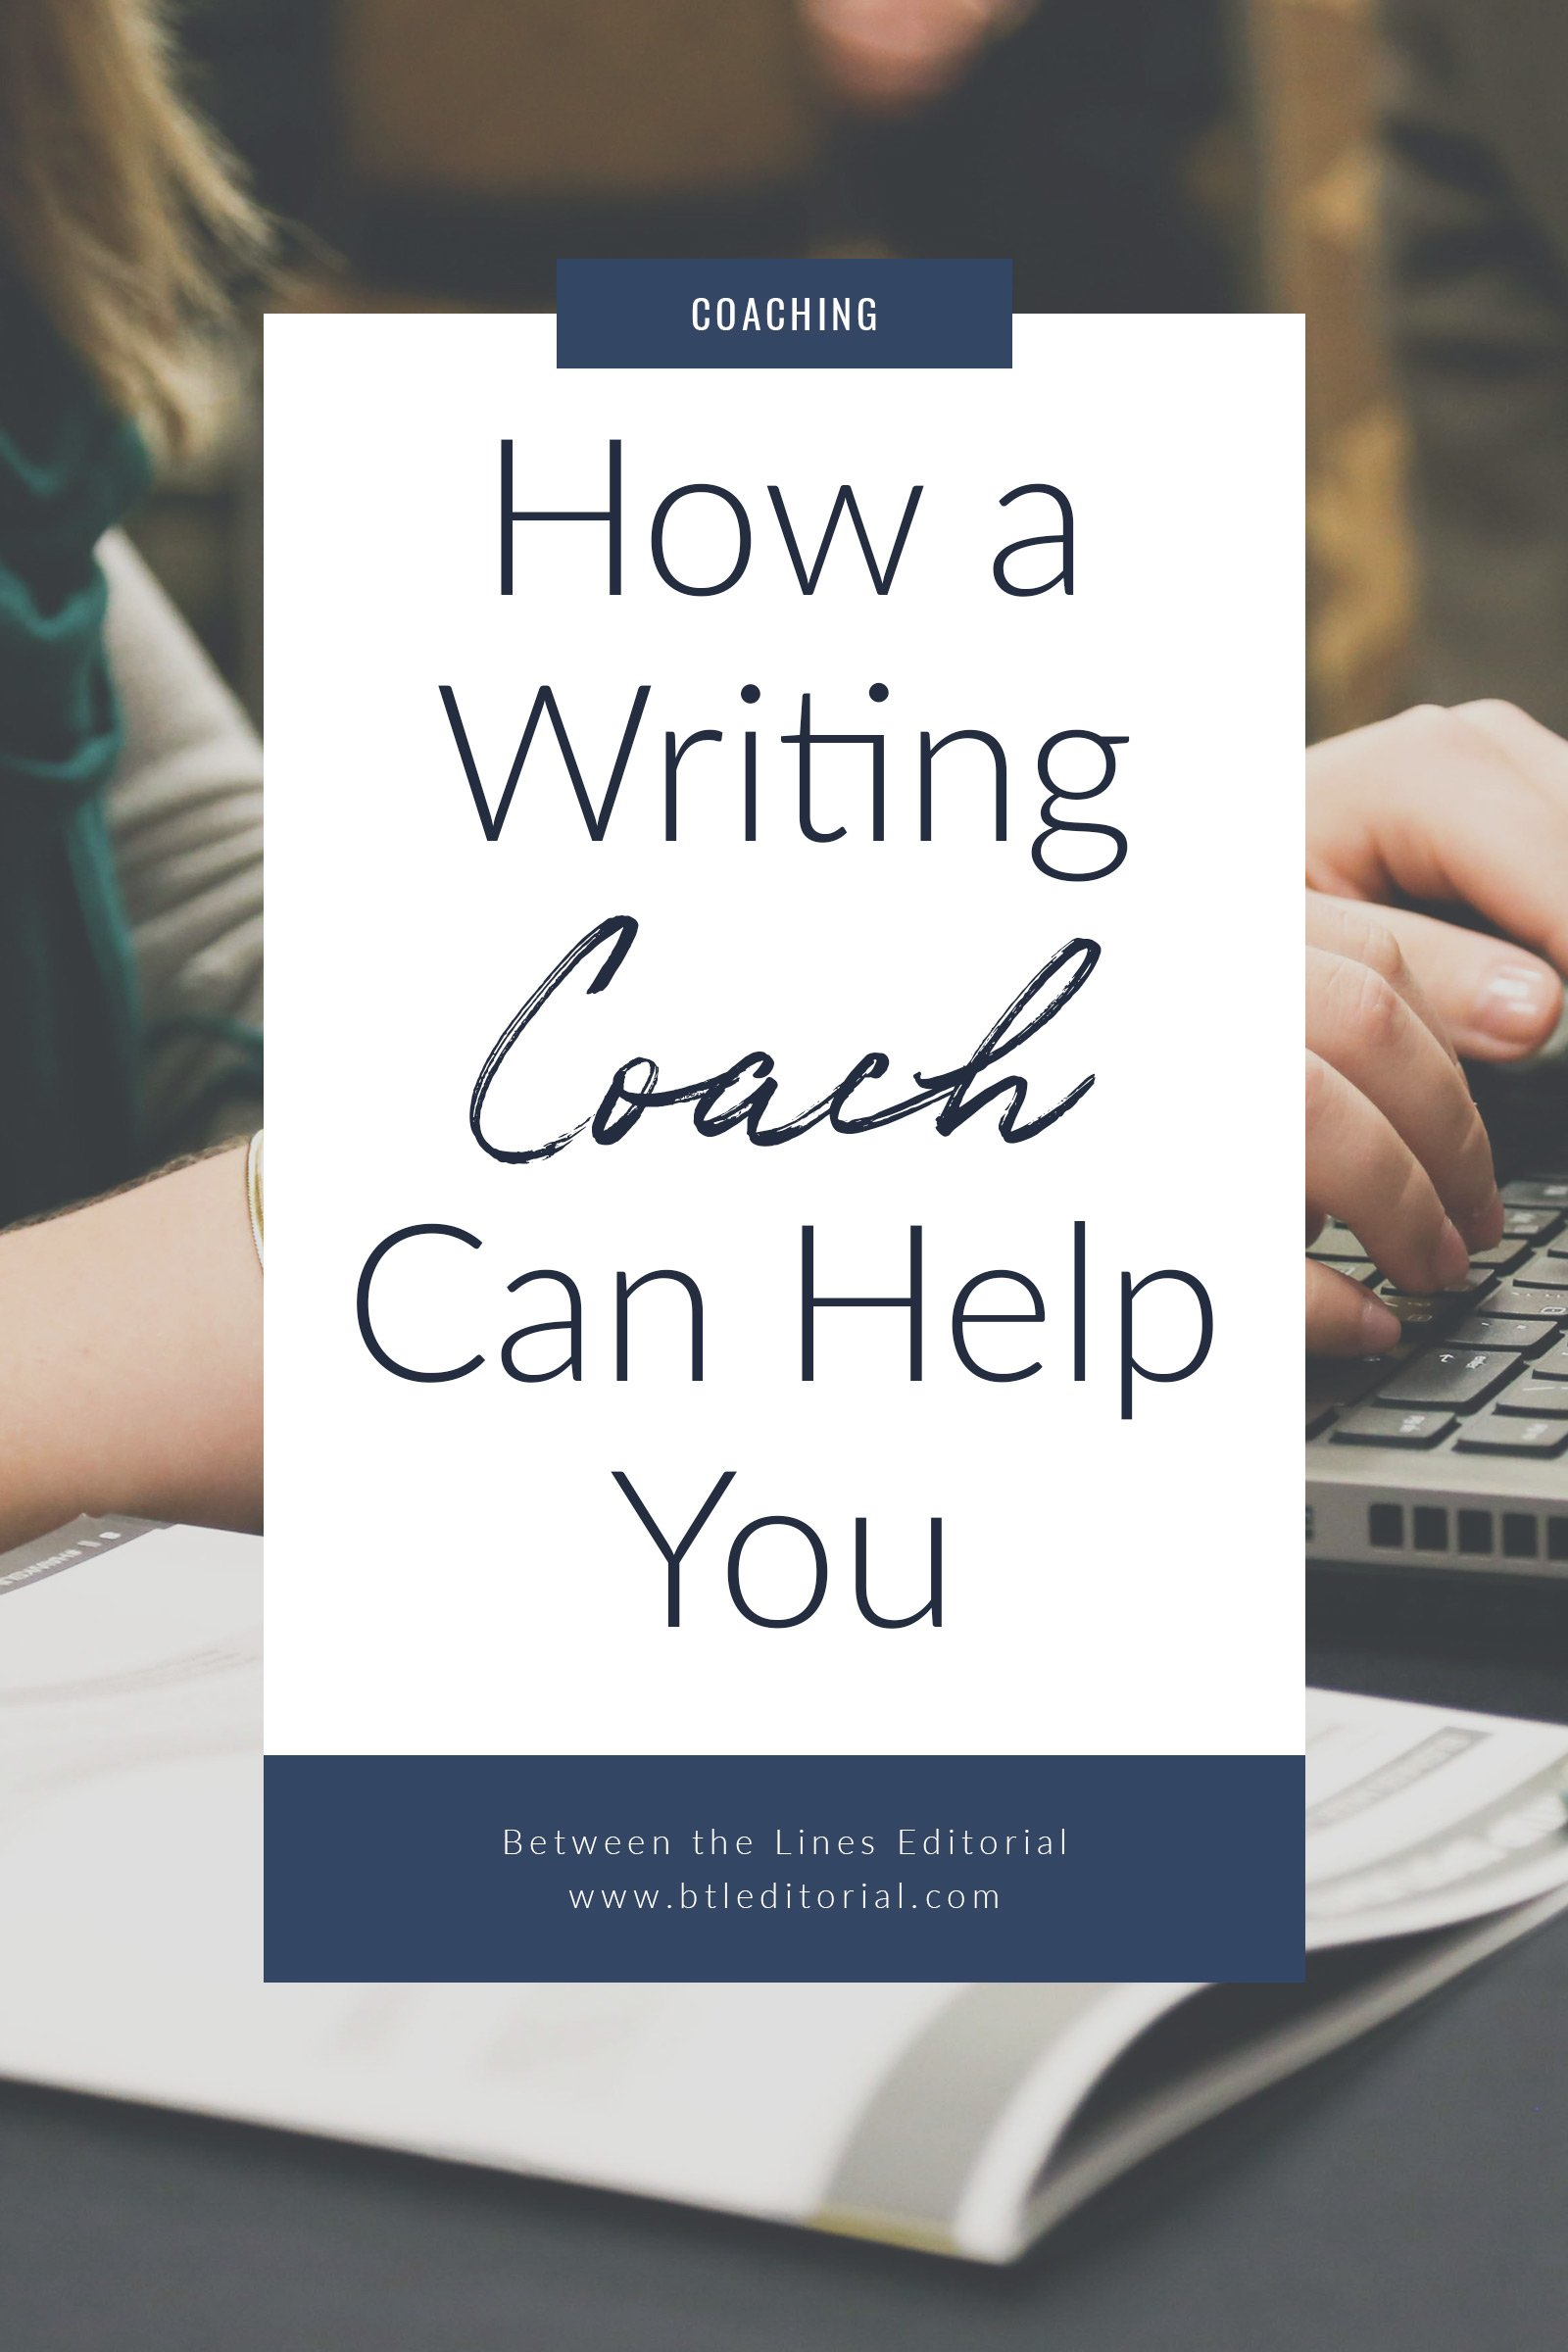 How a Writing Coach Can Help You